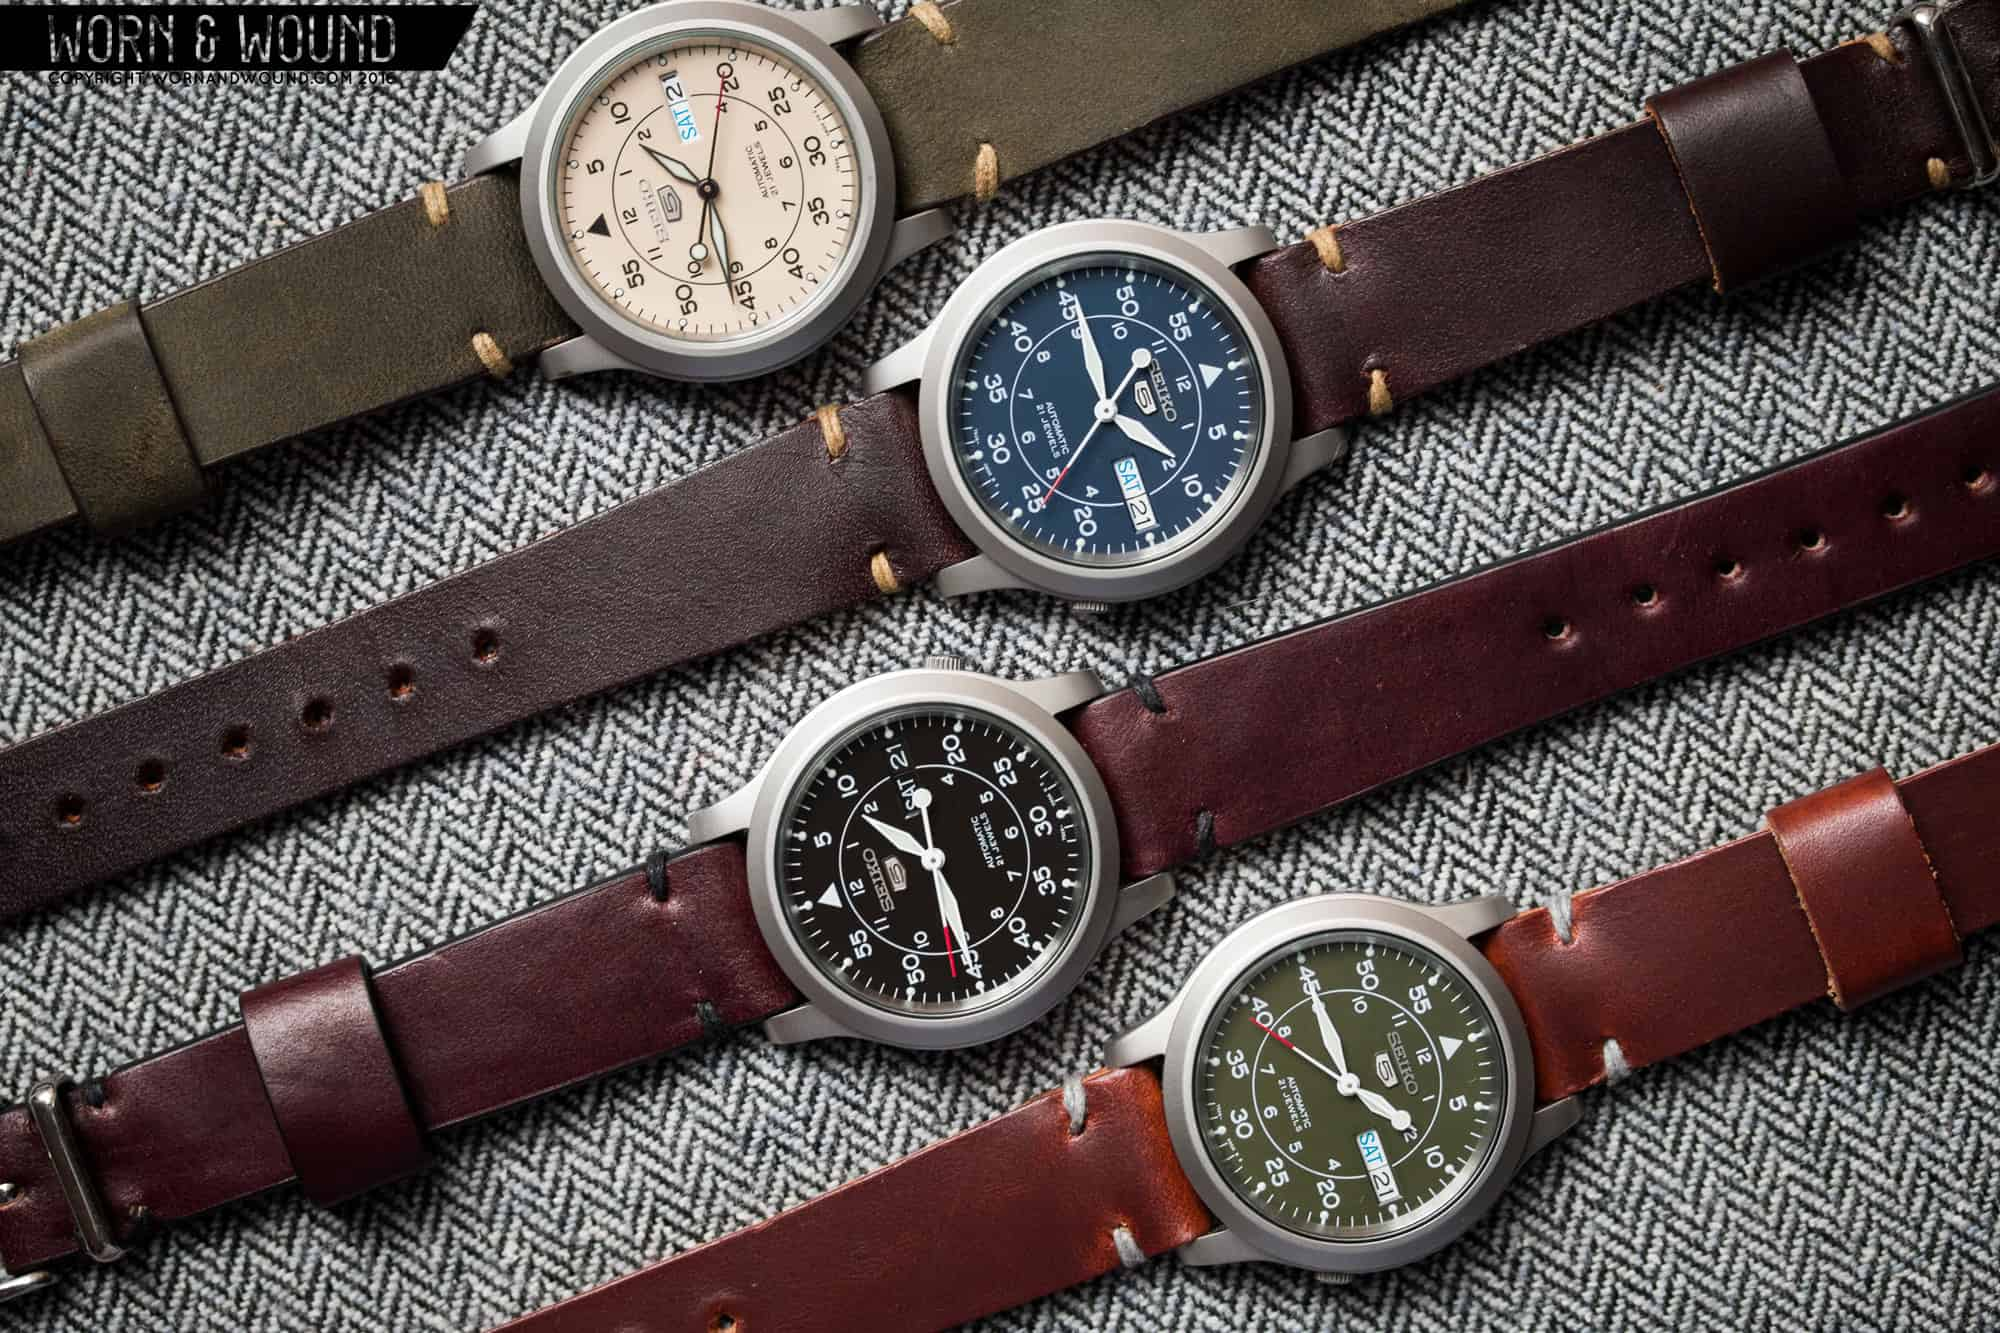 W w 39 s guide to watches 40mm and under part 1 worn wound for Watches 40mm